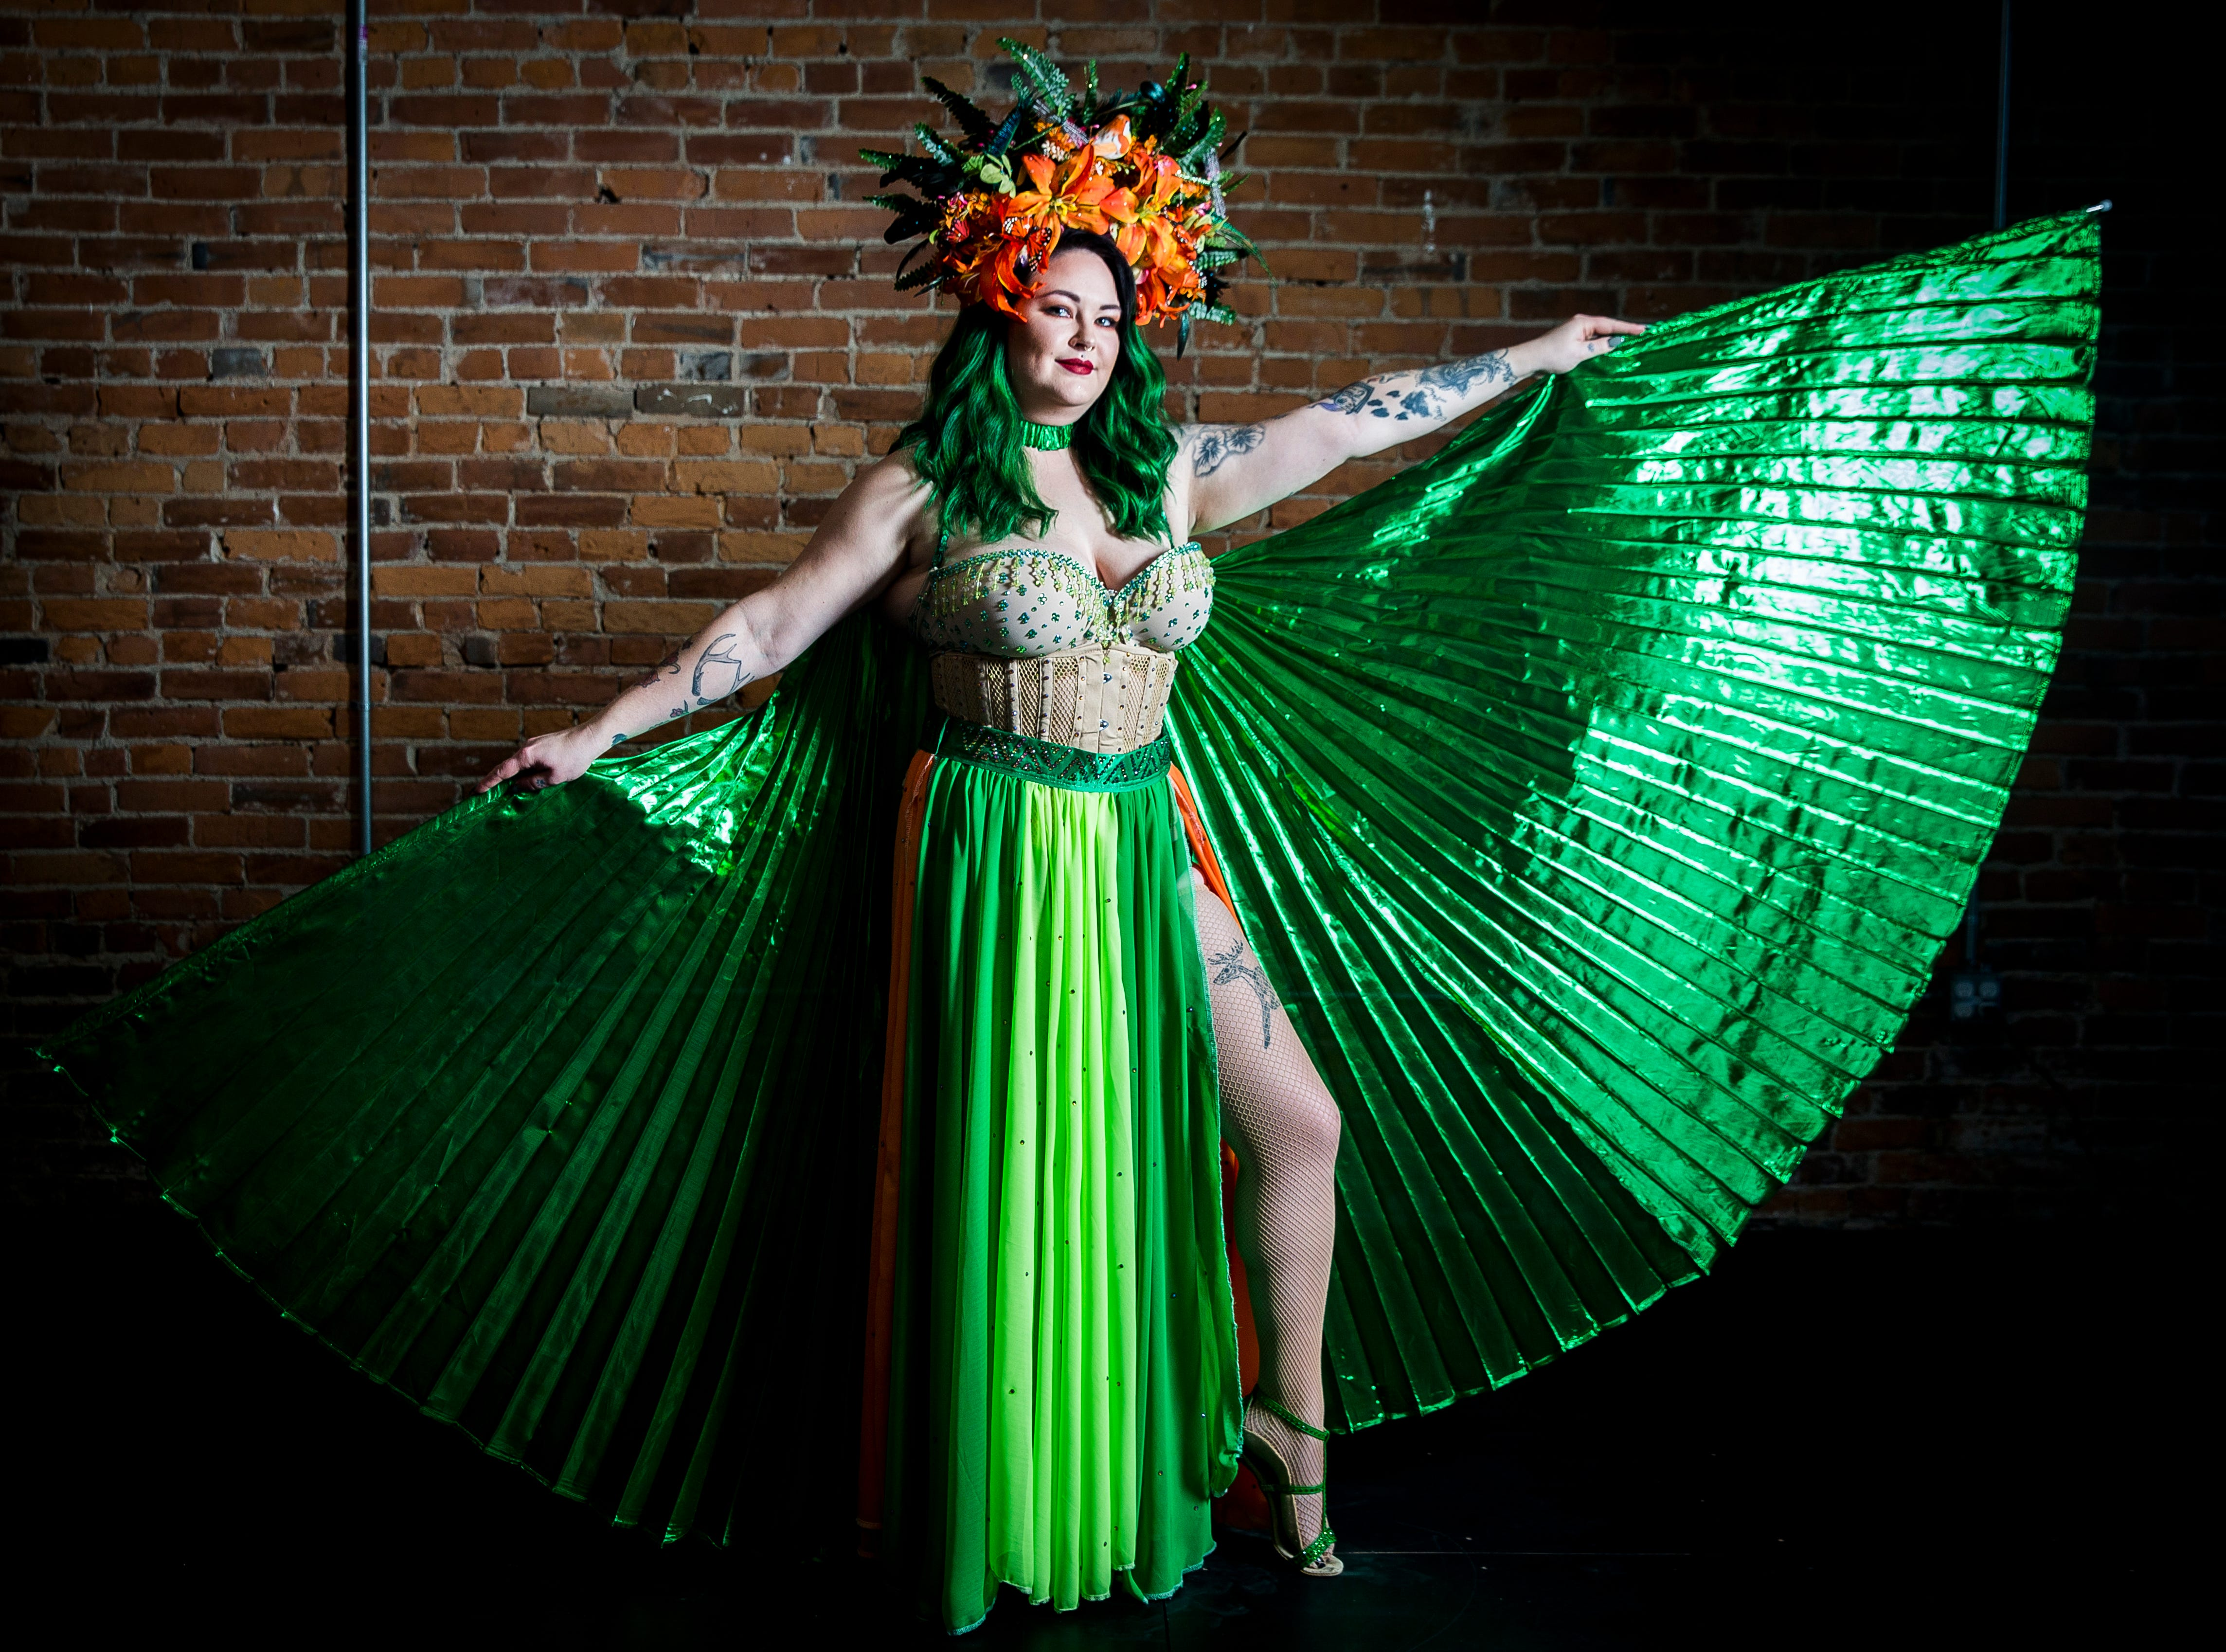 Fabulous Funcie Femmes performer Bettie Nuggs in and out of character.